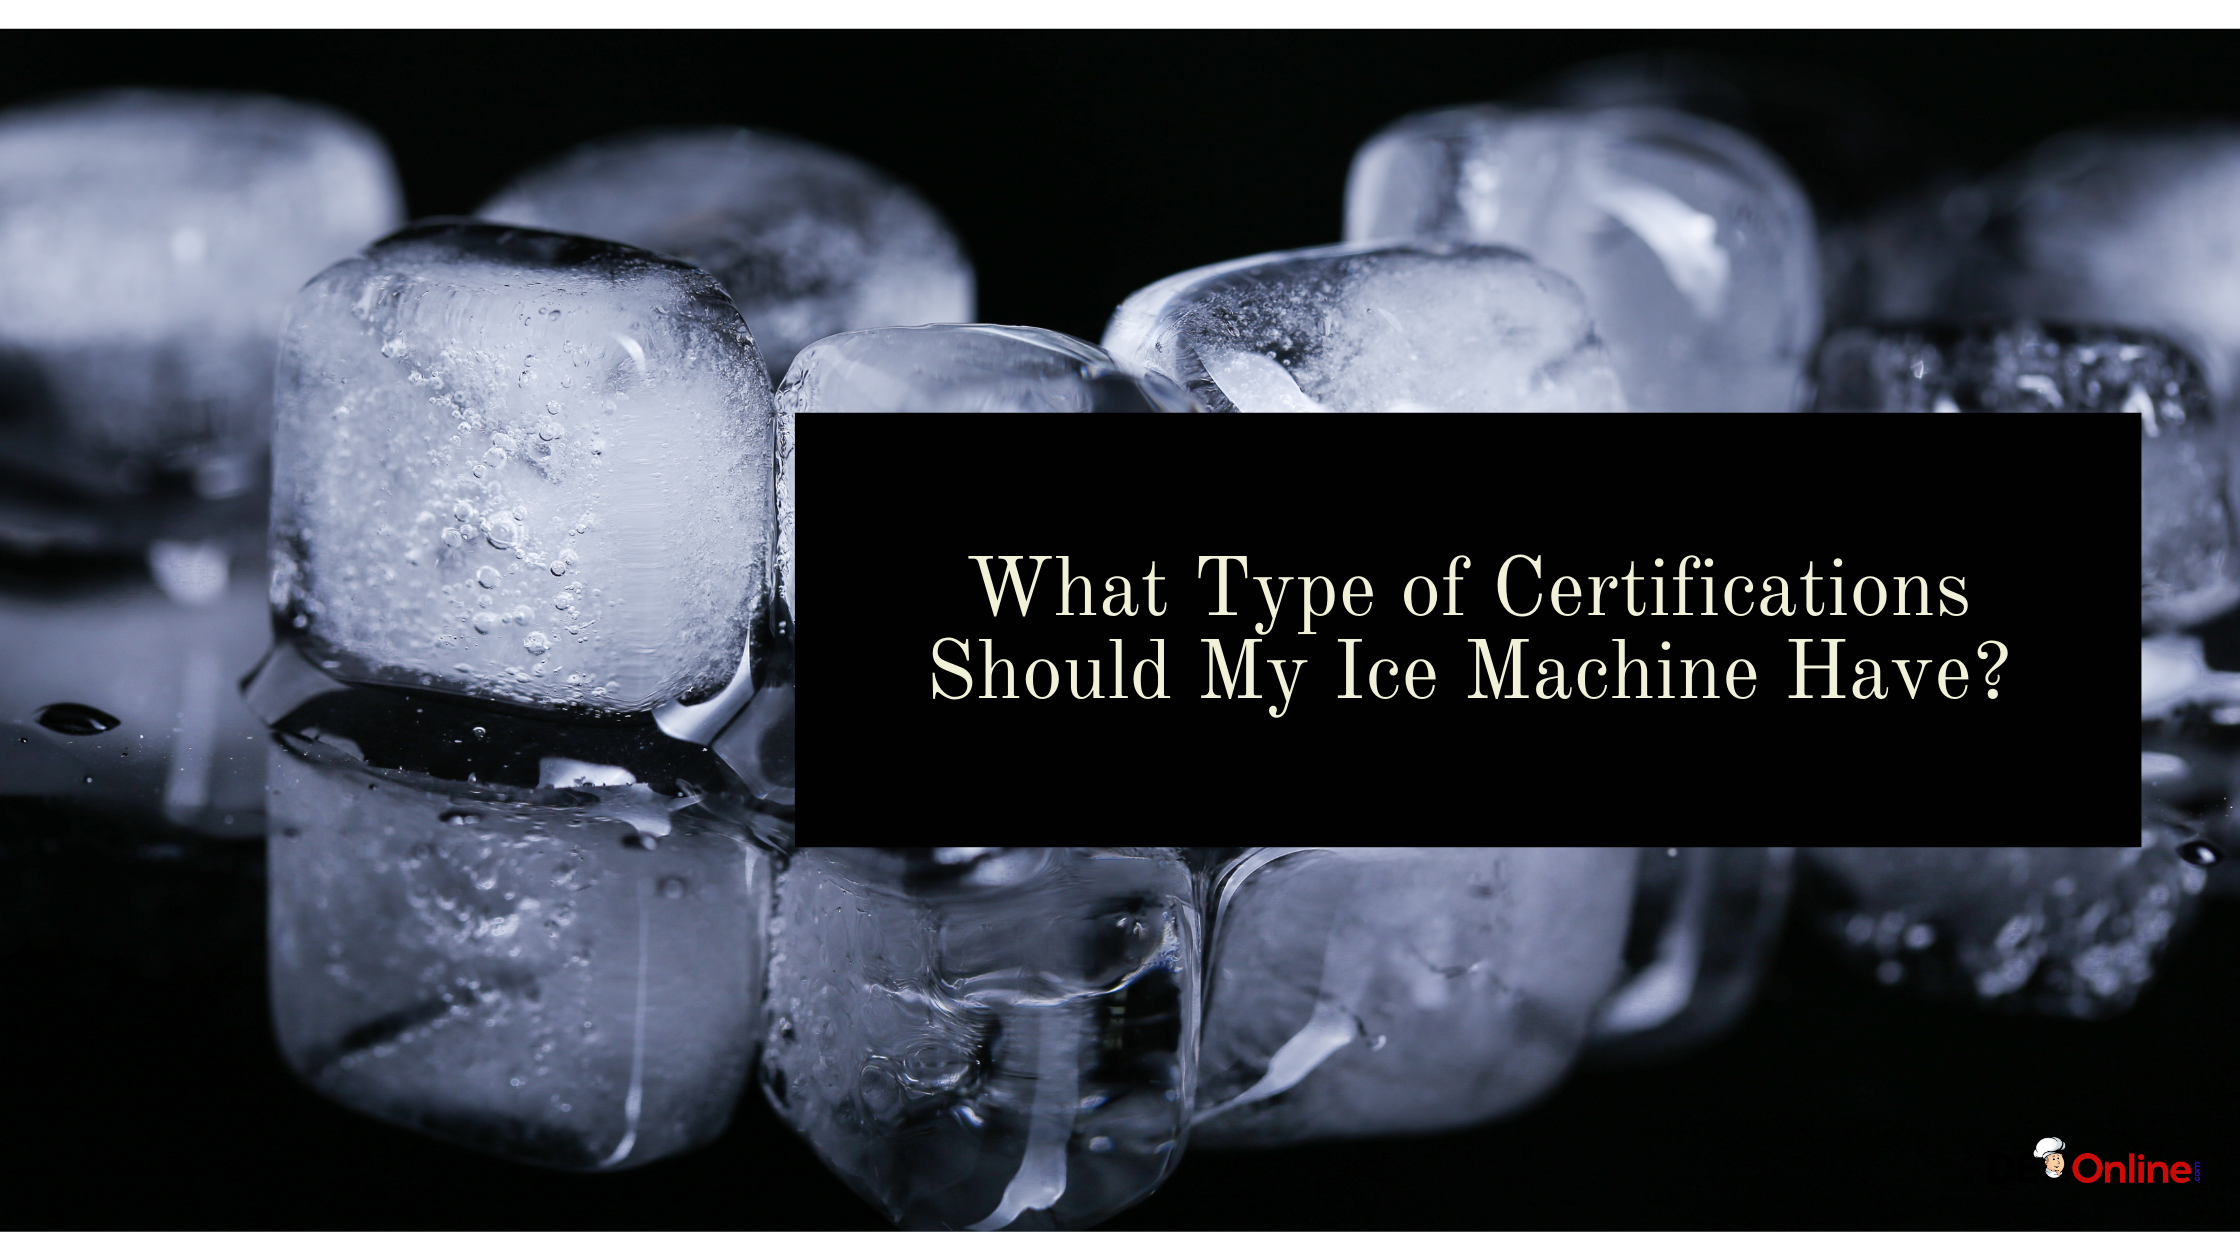 What Type of Certifications Should My Ice Machine Have?